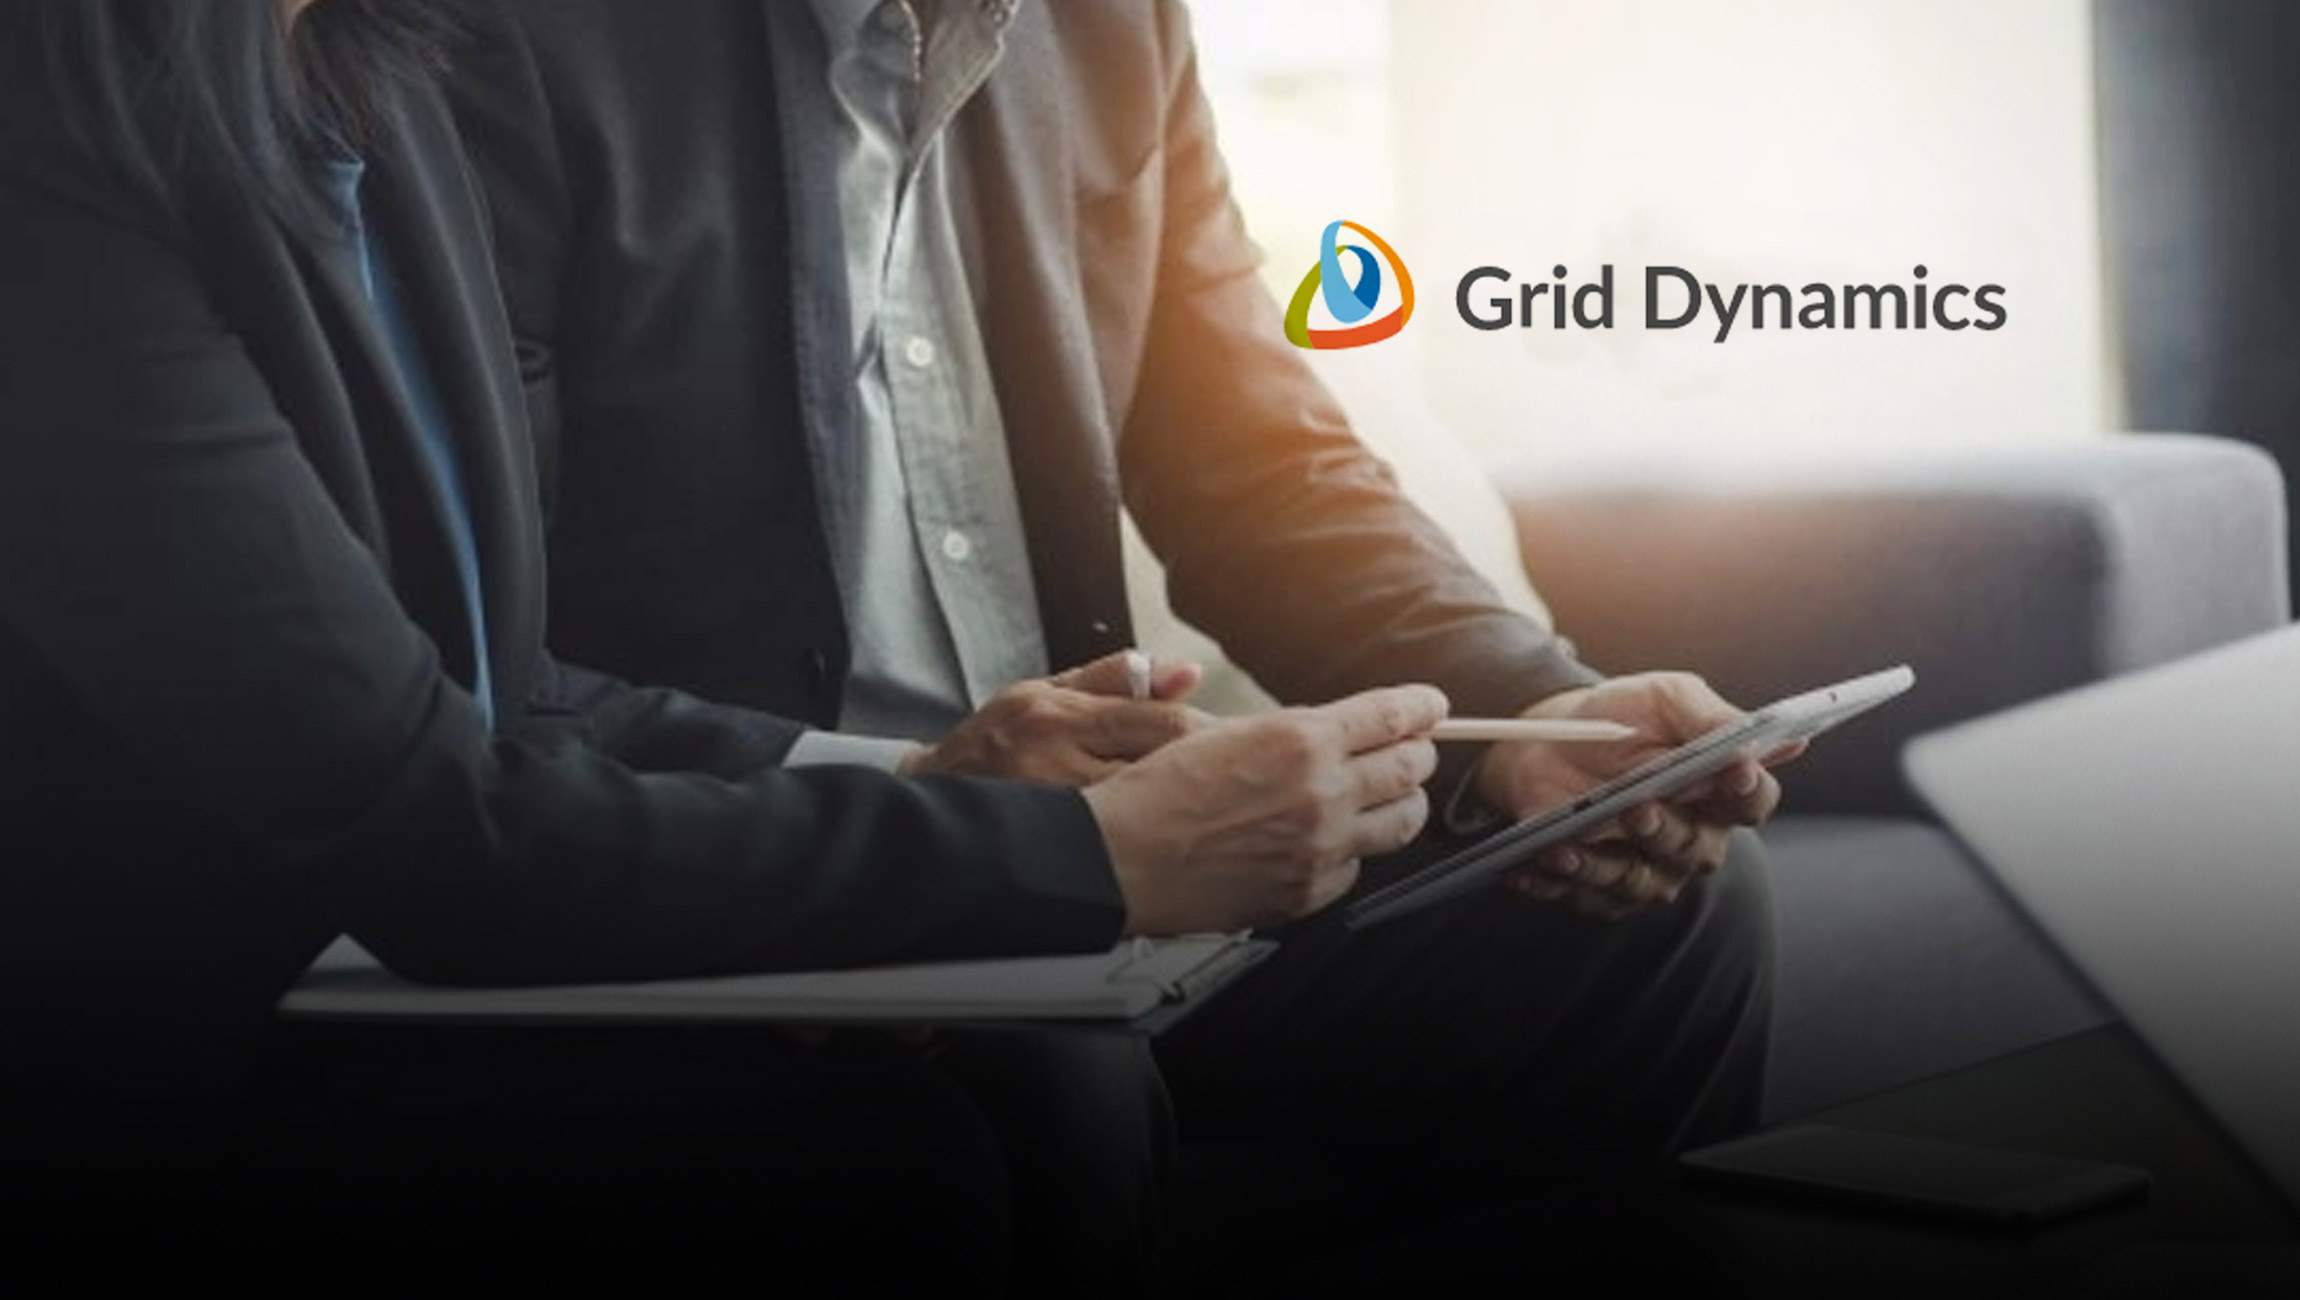 Grid Dynamics Named Implementation Partner for Google Cloud Retail Search to Accelerate Digital Transformation for Leading Retail Brands